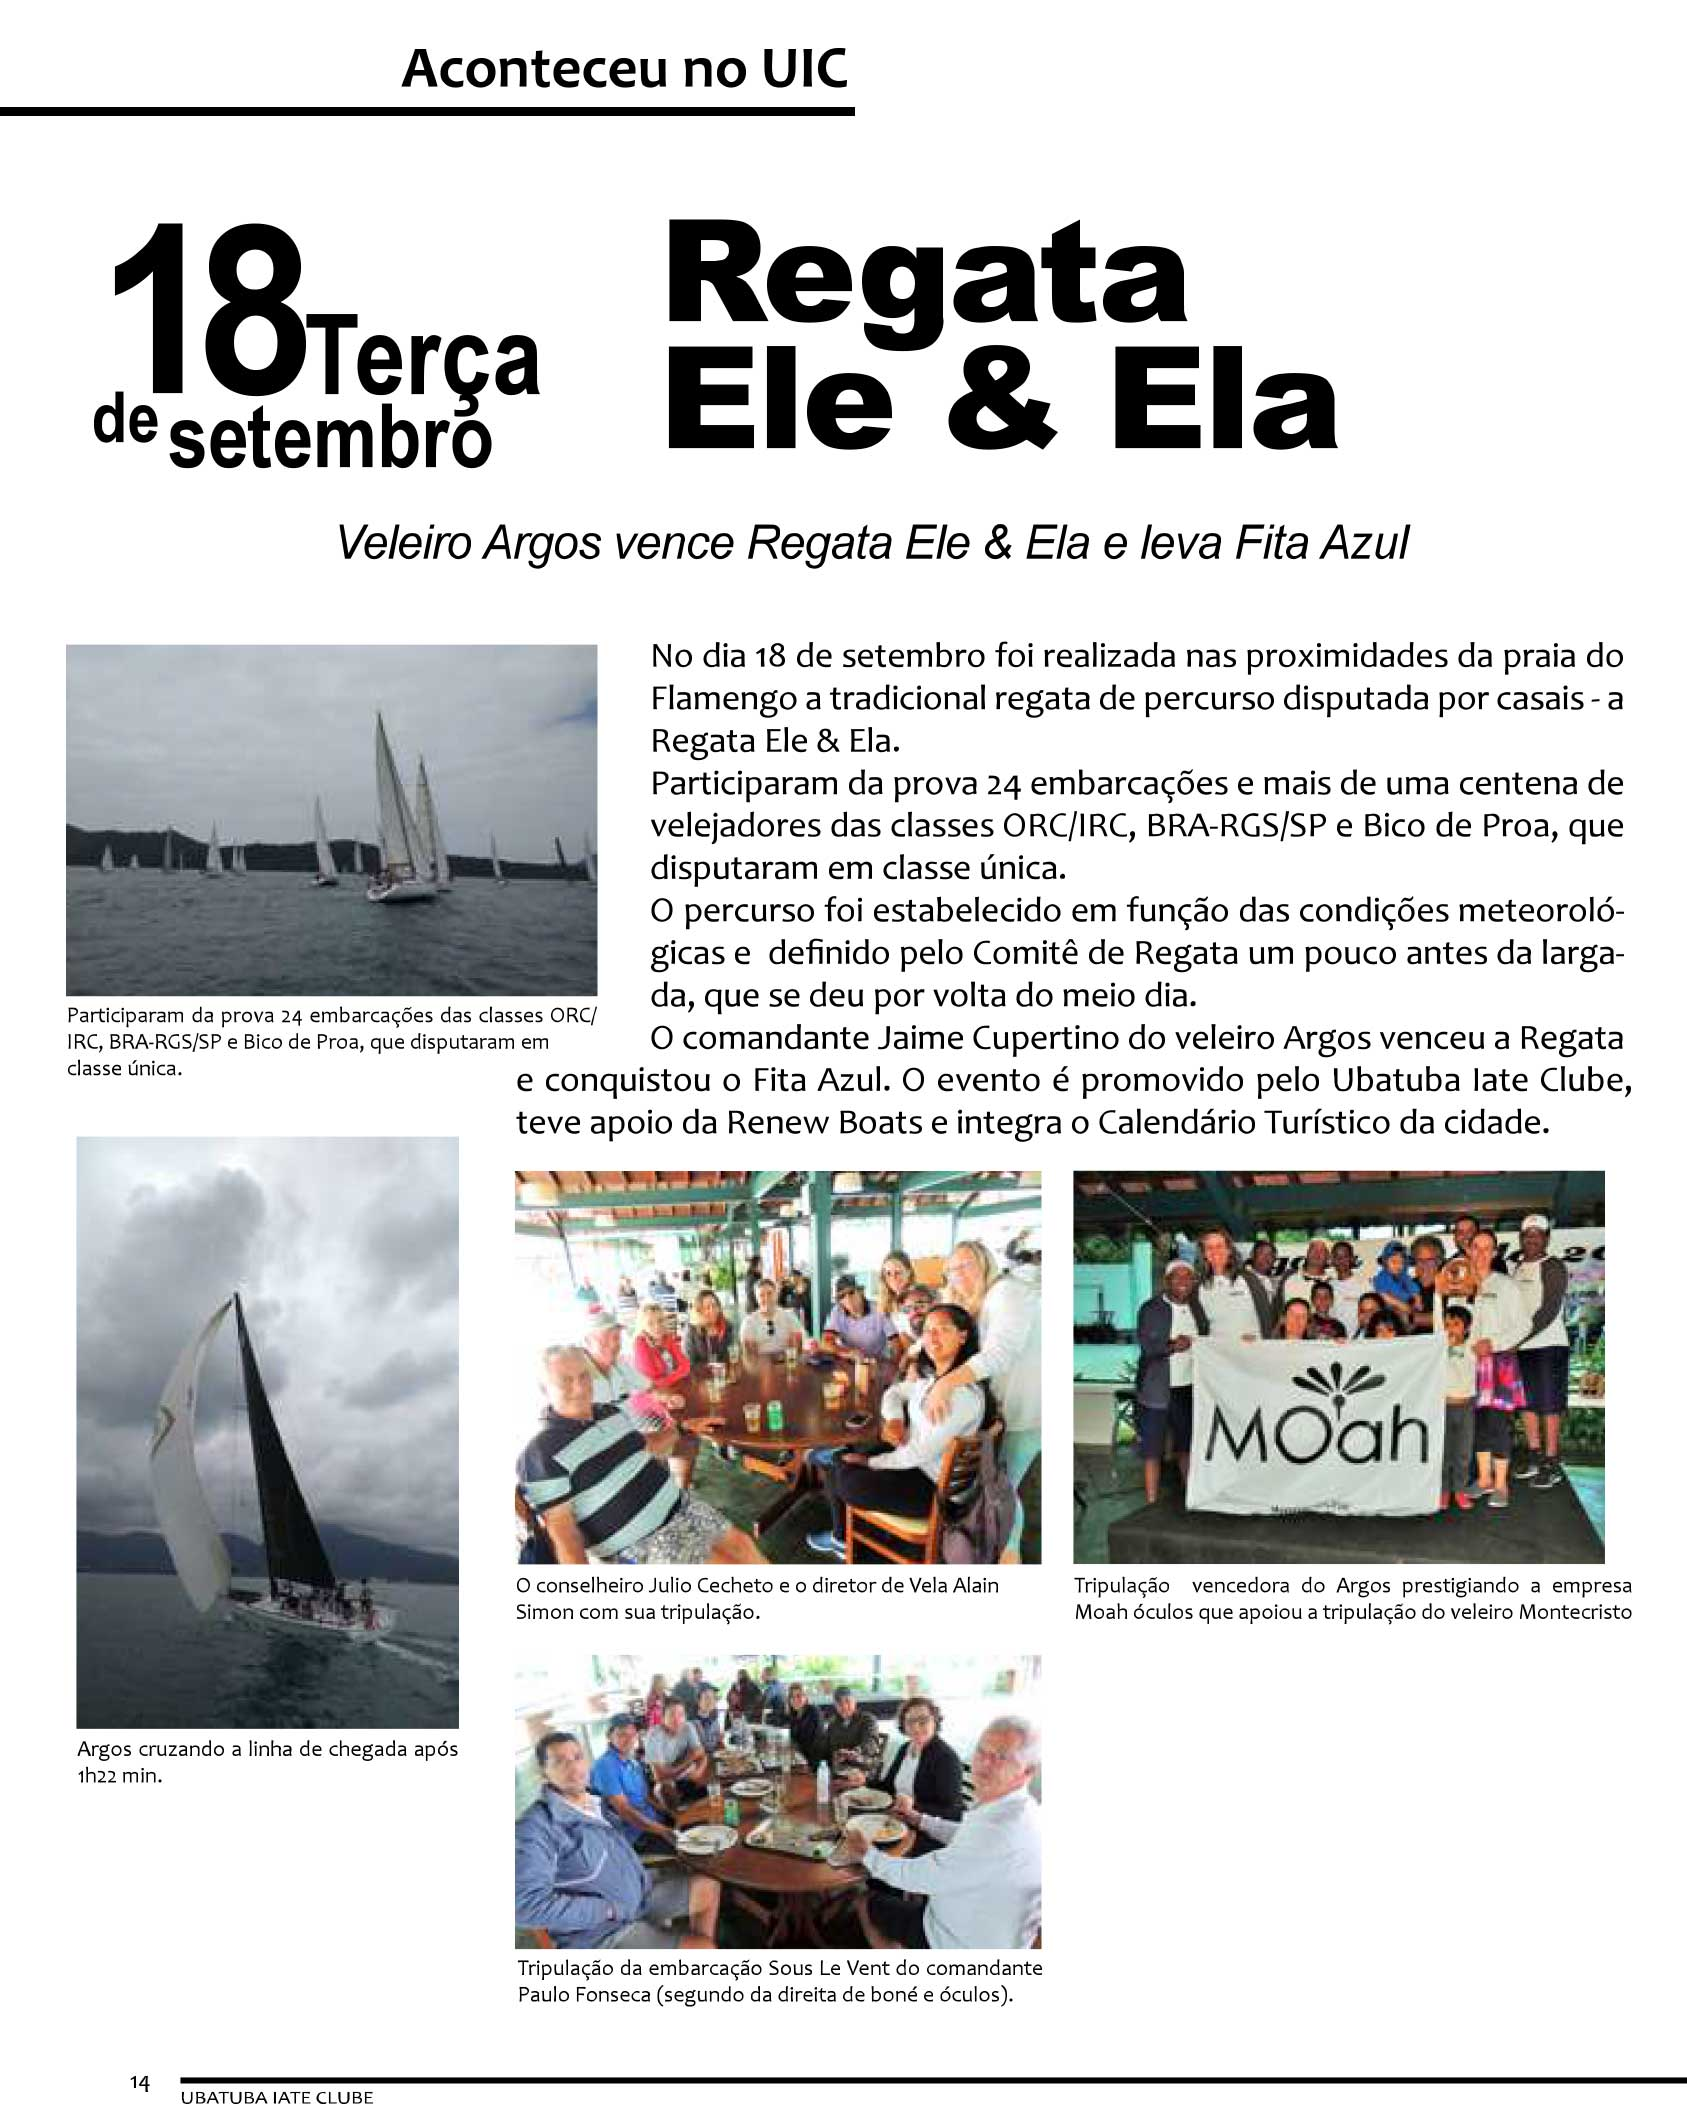 Regata-Ele-Ela-2018-rotated